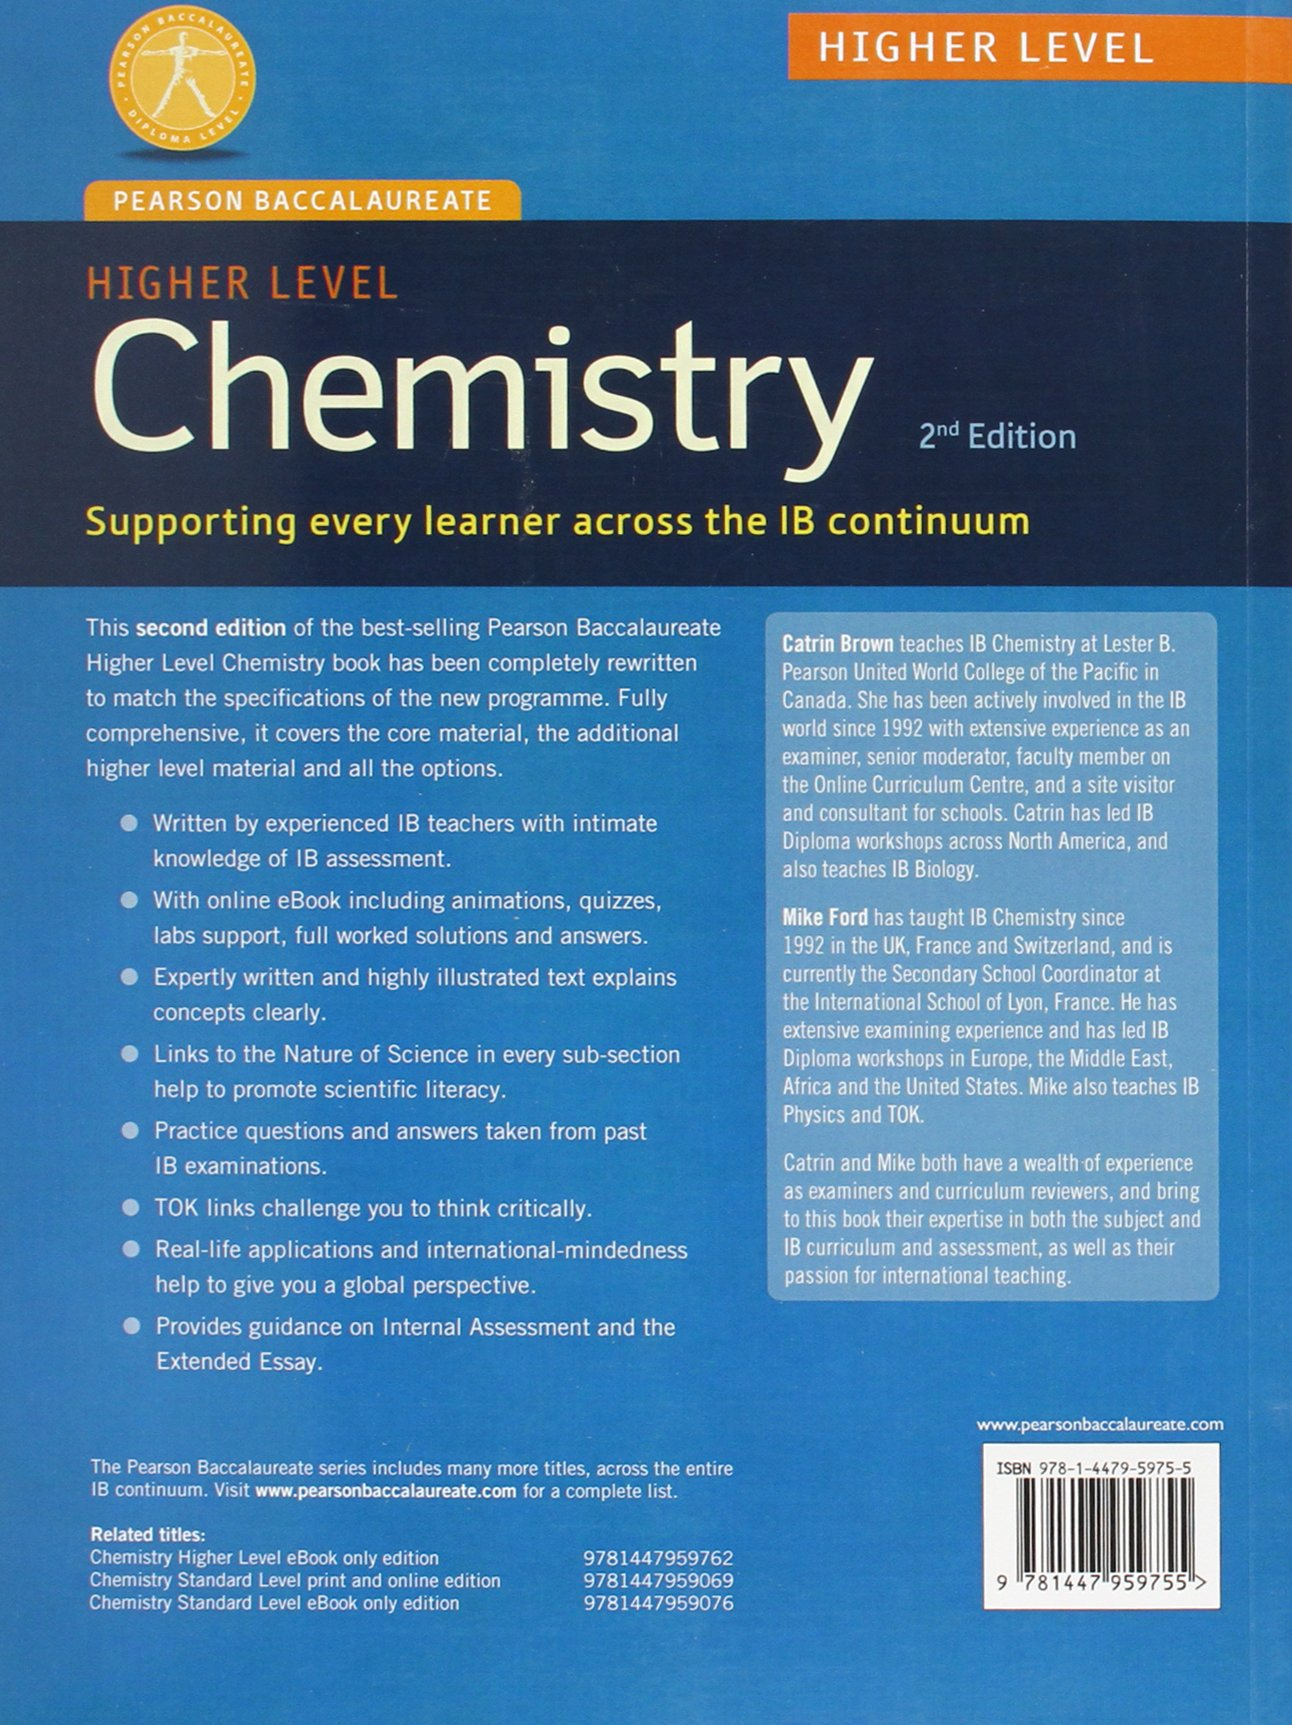 Pearson baccalaureate chemistry higher level 2nd edition print and pearson baccalaureate chemistry higher level 2nd edition print and online edition for the ib diploma pearson international baccalaureate diploma fandeluxe Gallery